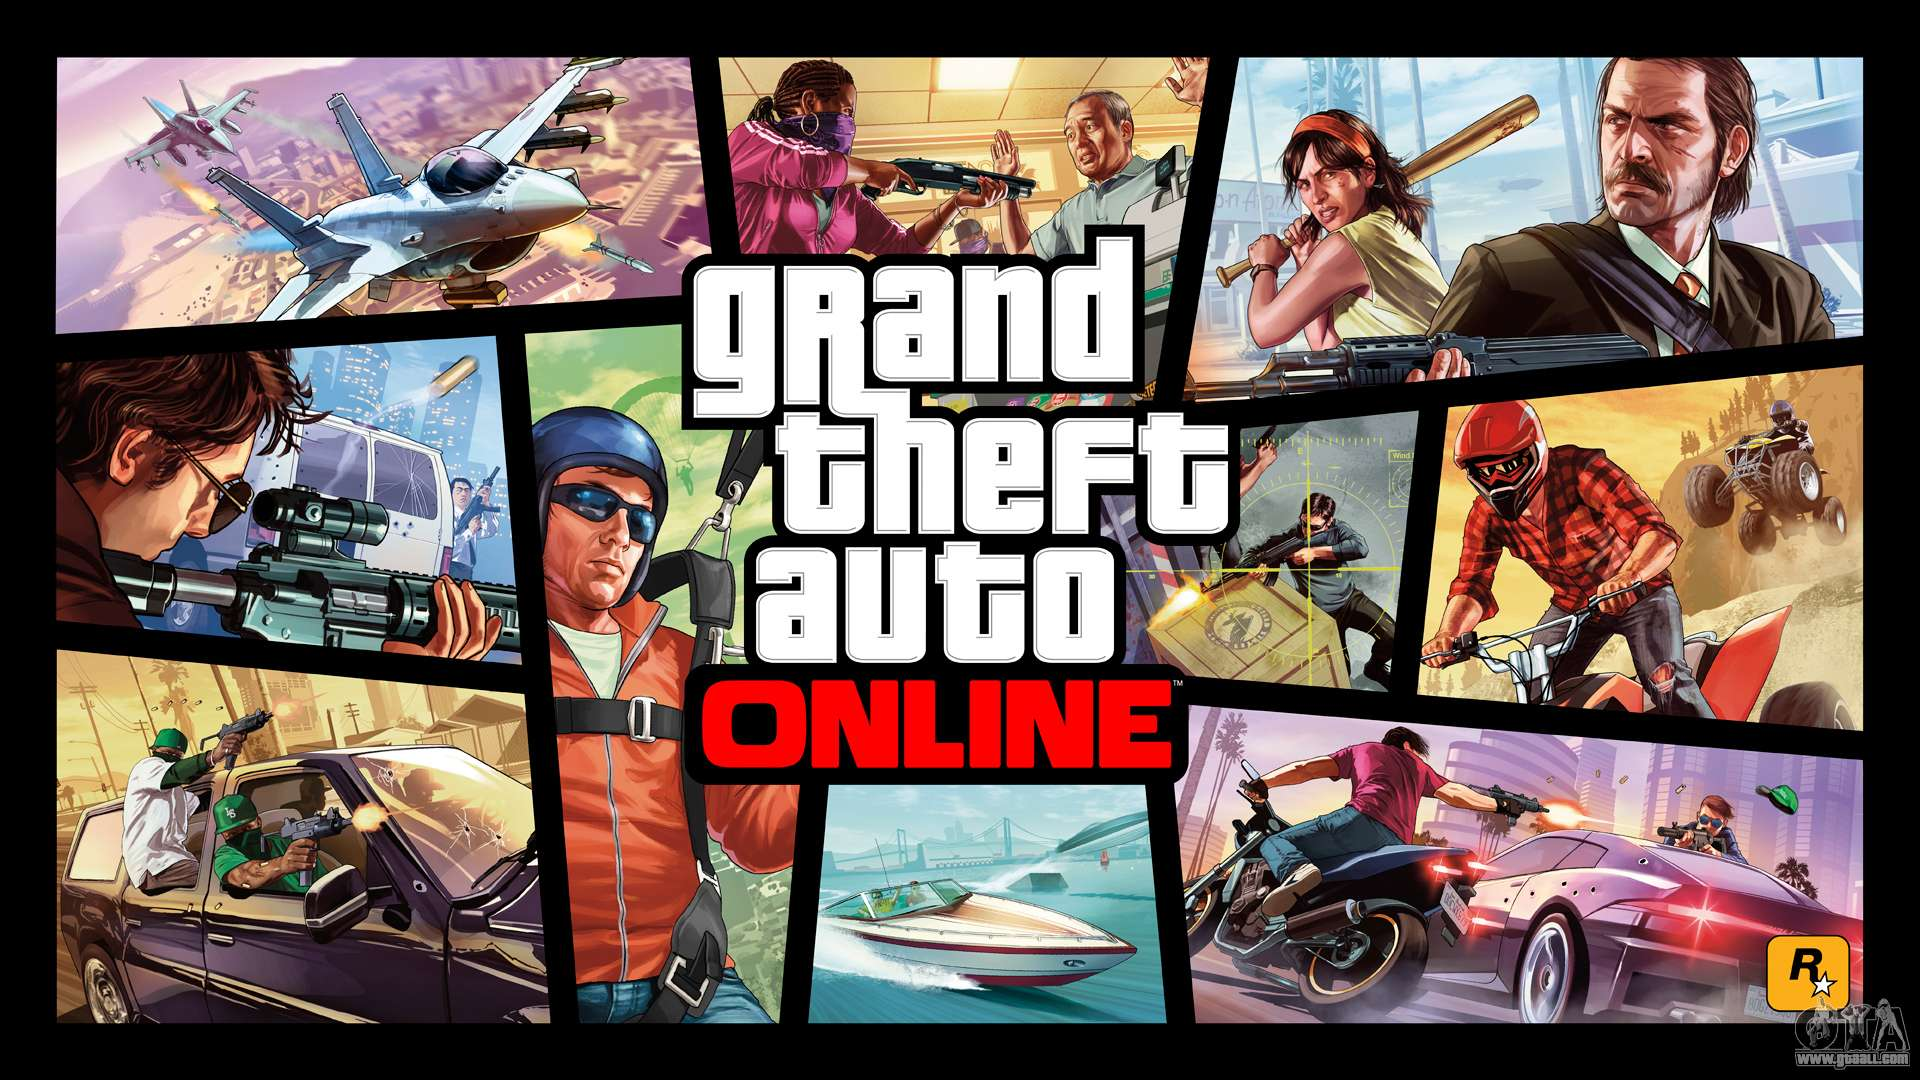 GTA 5 PC: system requirements and news, cheat codes and mods